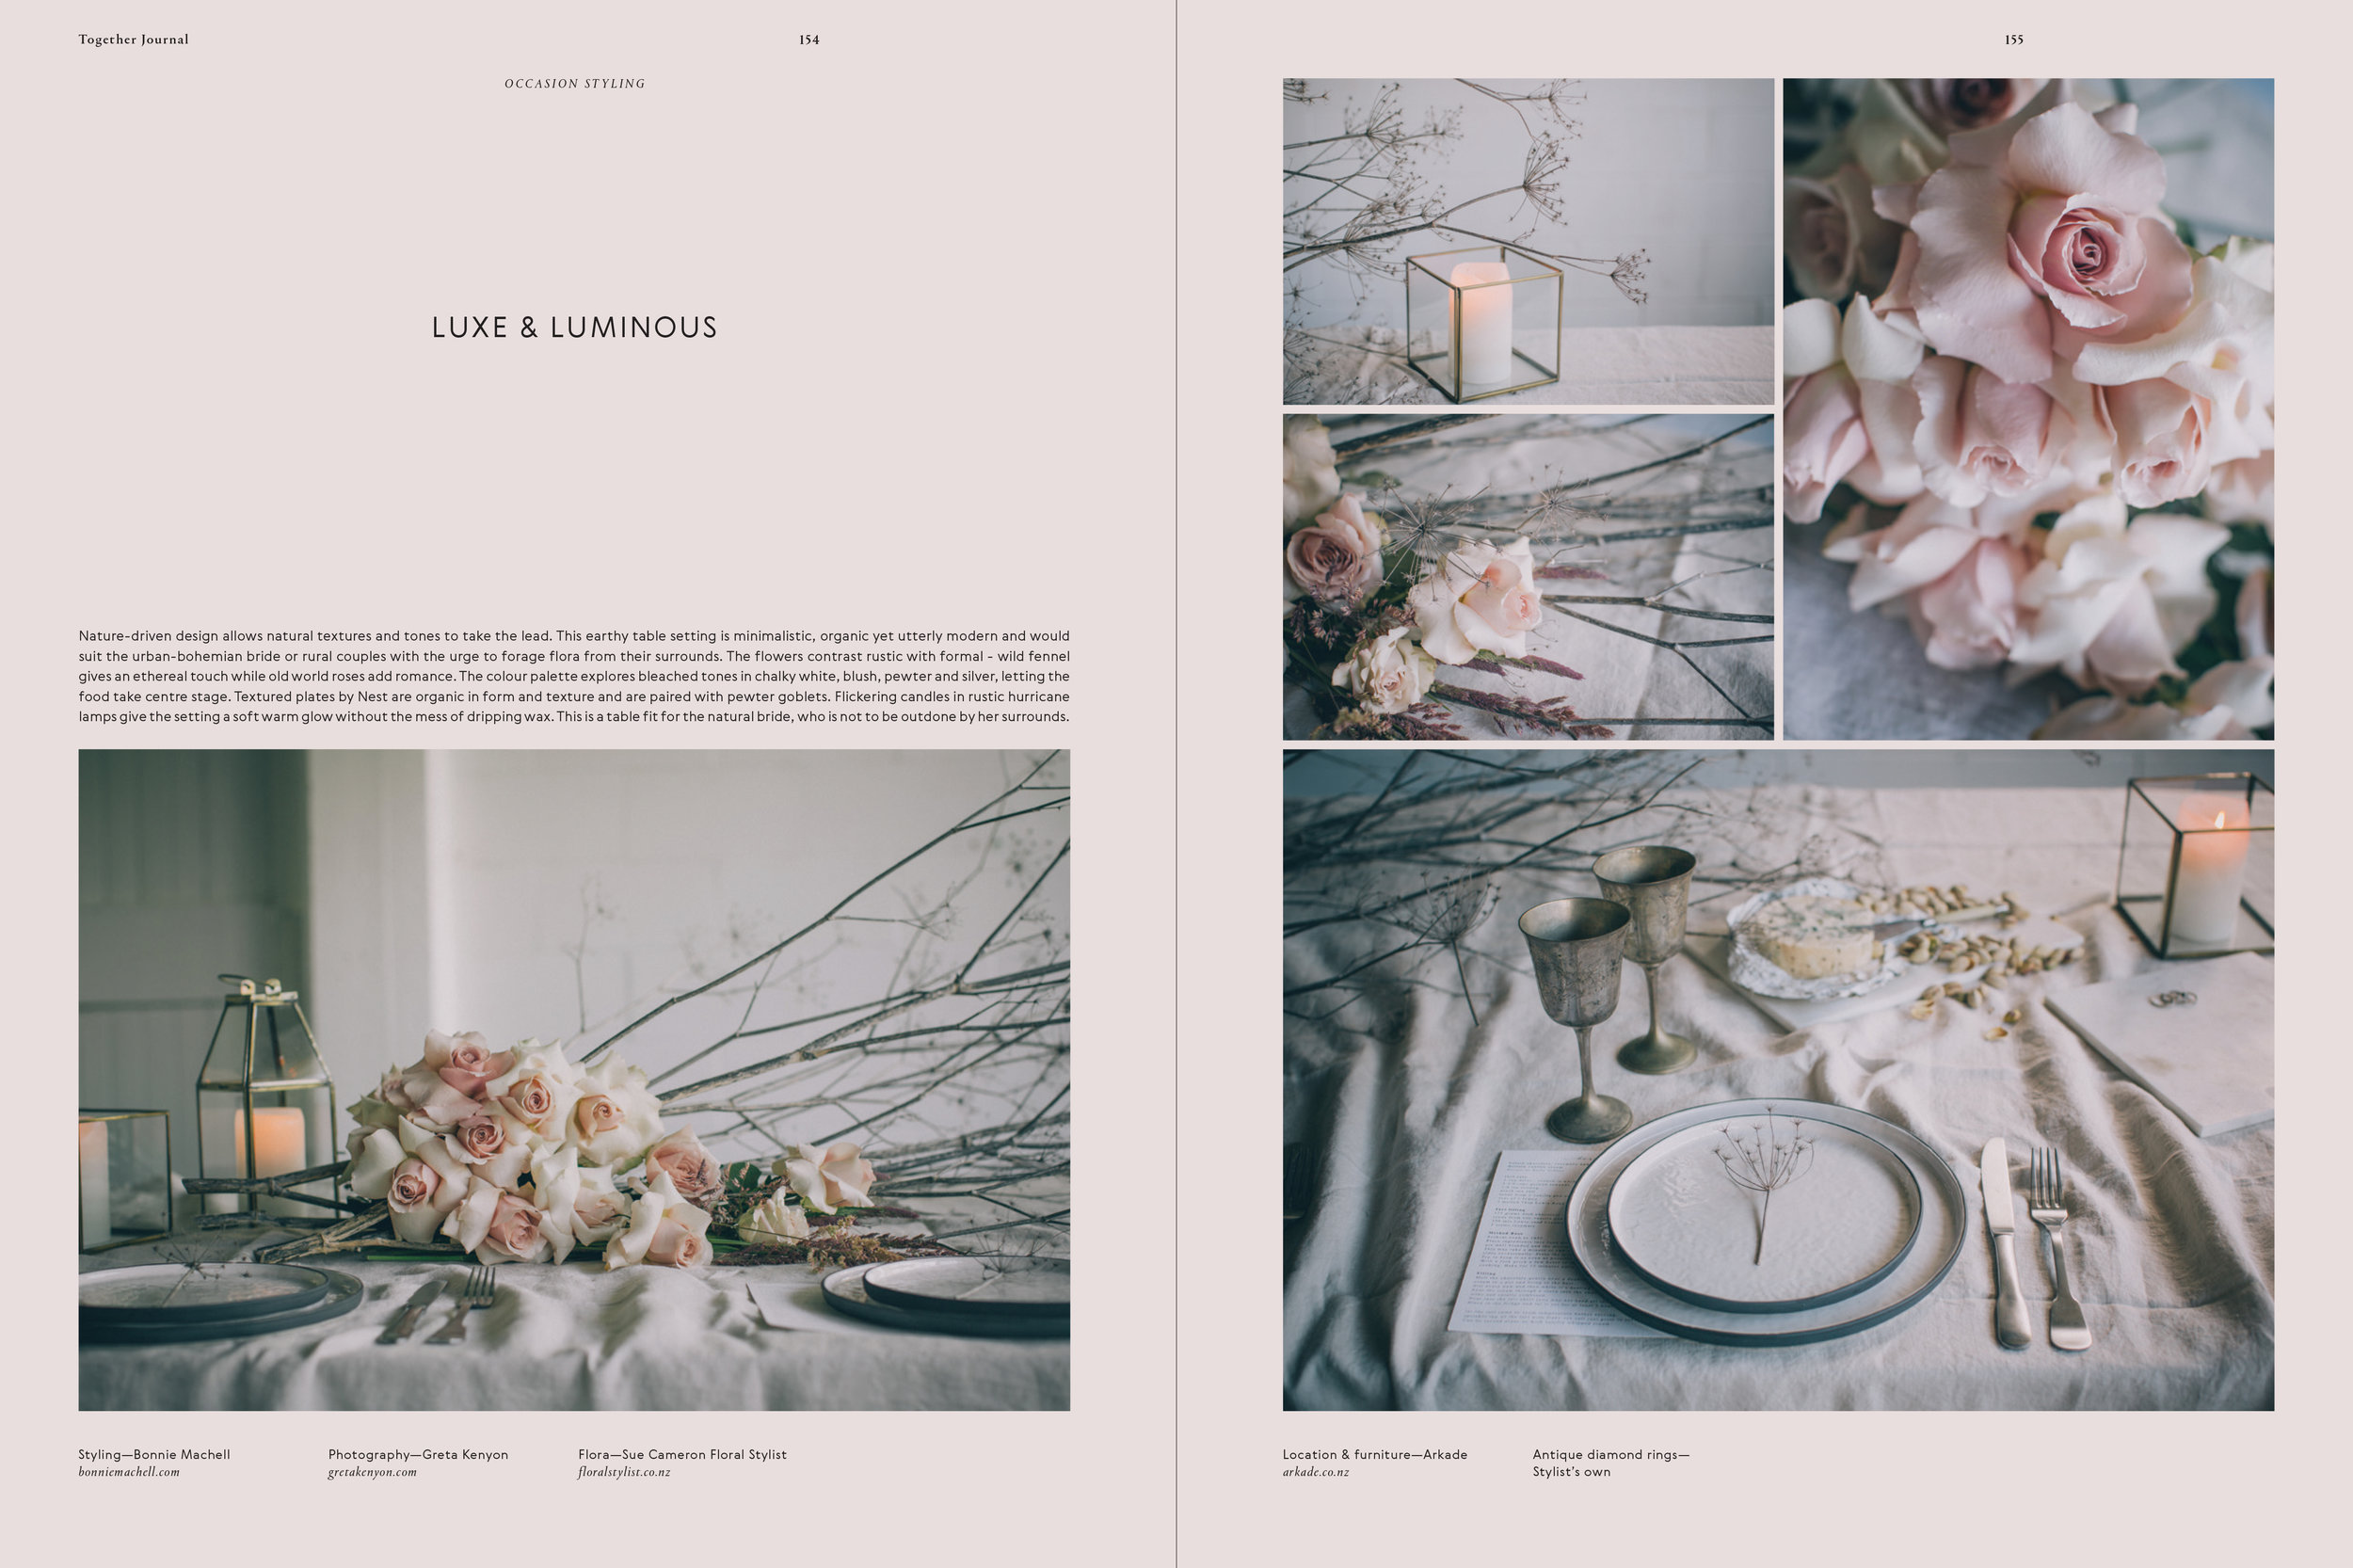 Luxe and luminous   Together Journel 2017